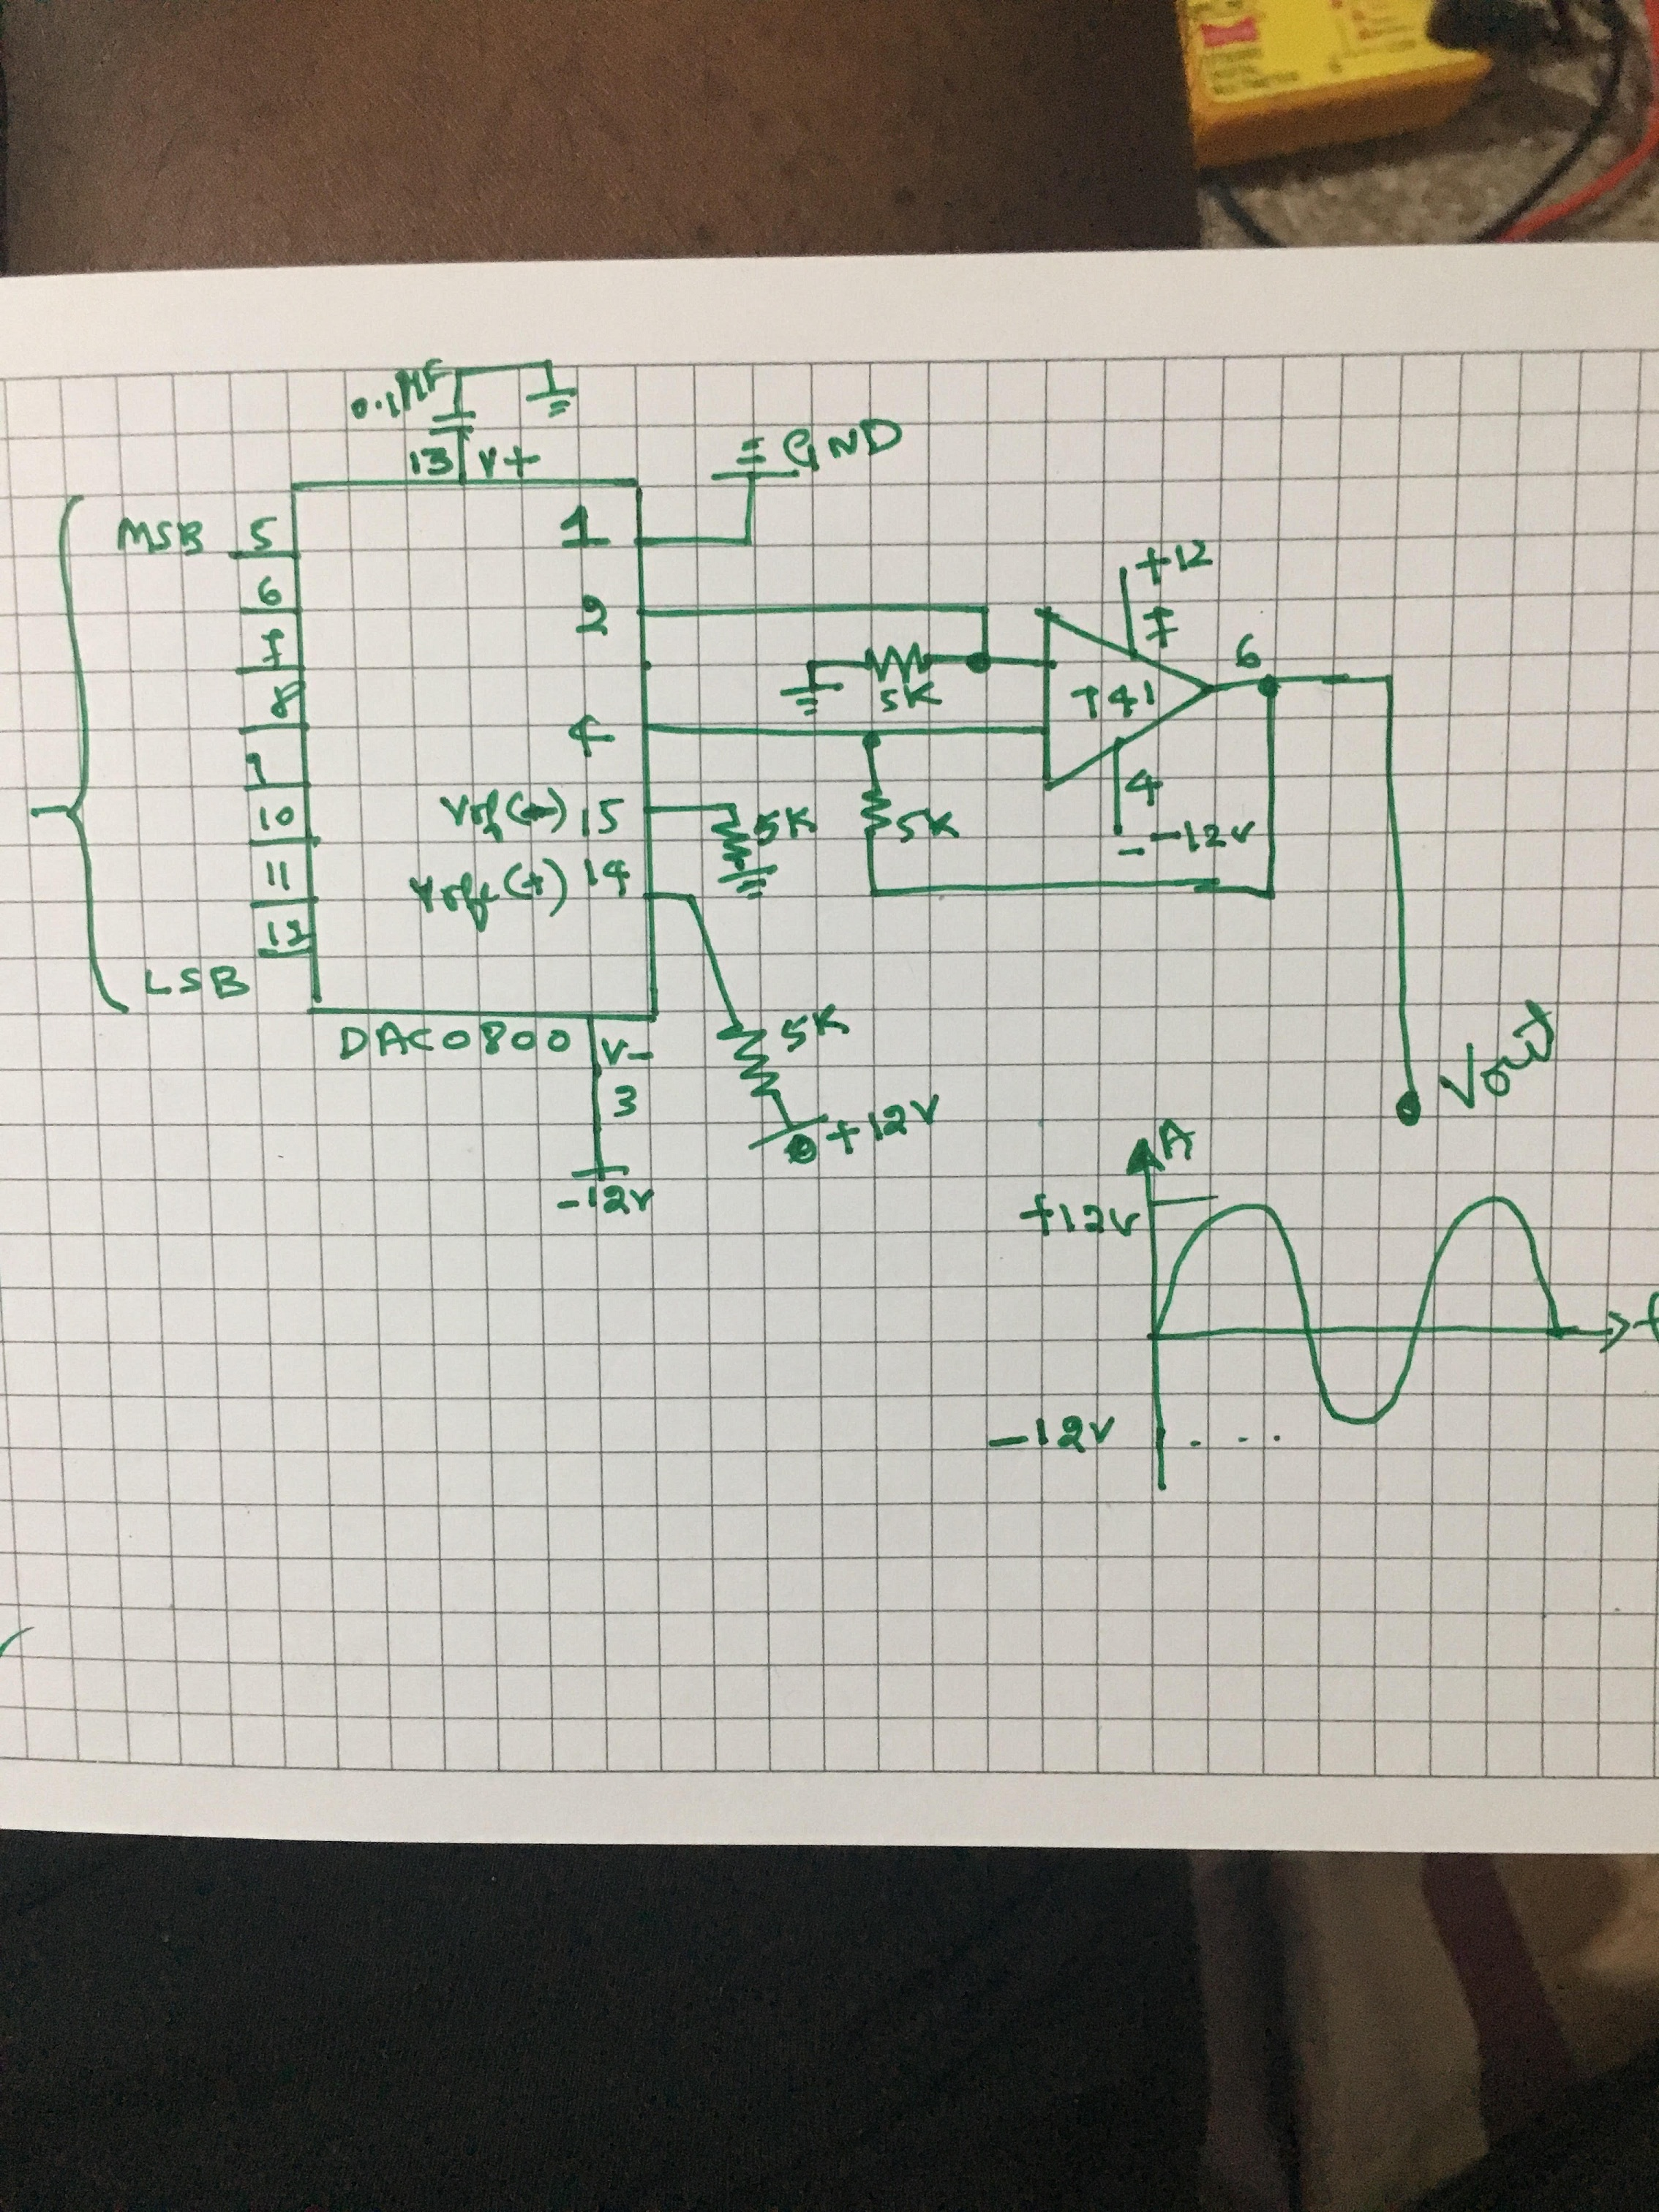 I wanted bipolar output +-12v analog output,is my schematic correct?,i am  not getting any output from above circuit,how can i debug dac0800 output?